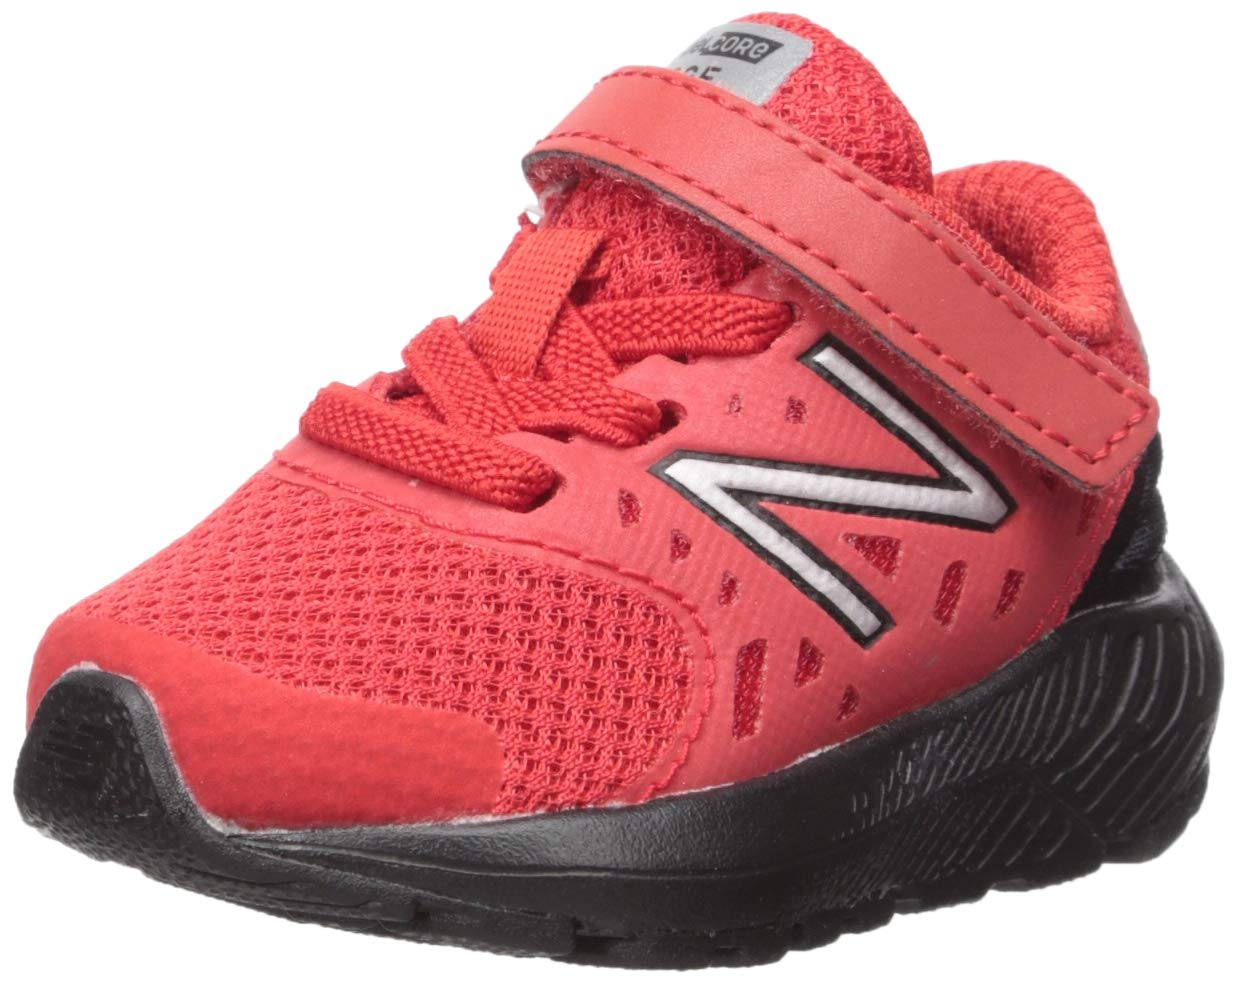 New Balance Boys' Urge V2 FuelCore Running Shoe, Velocity RED/Black, 10 W US Toddler by New Balance